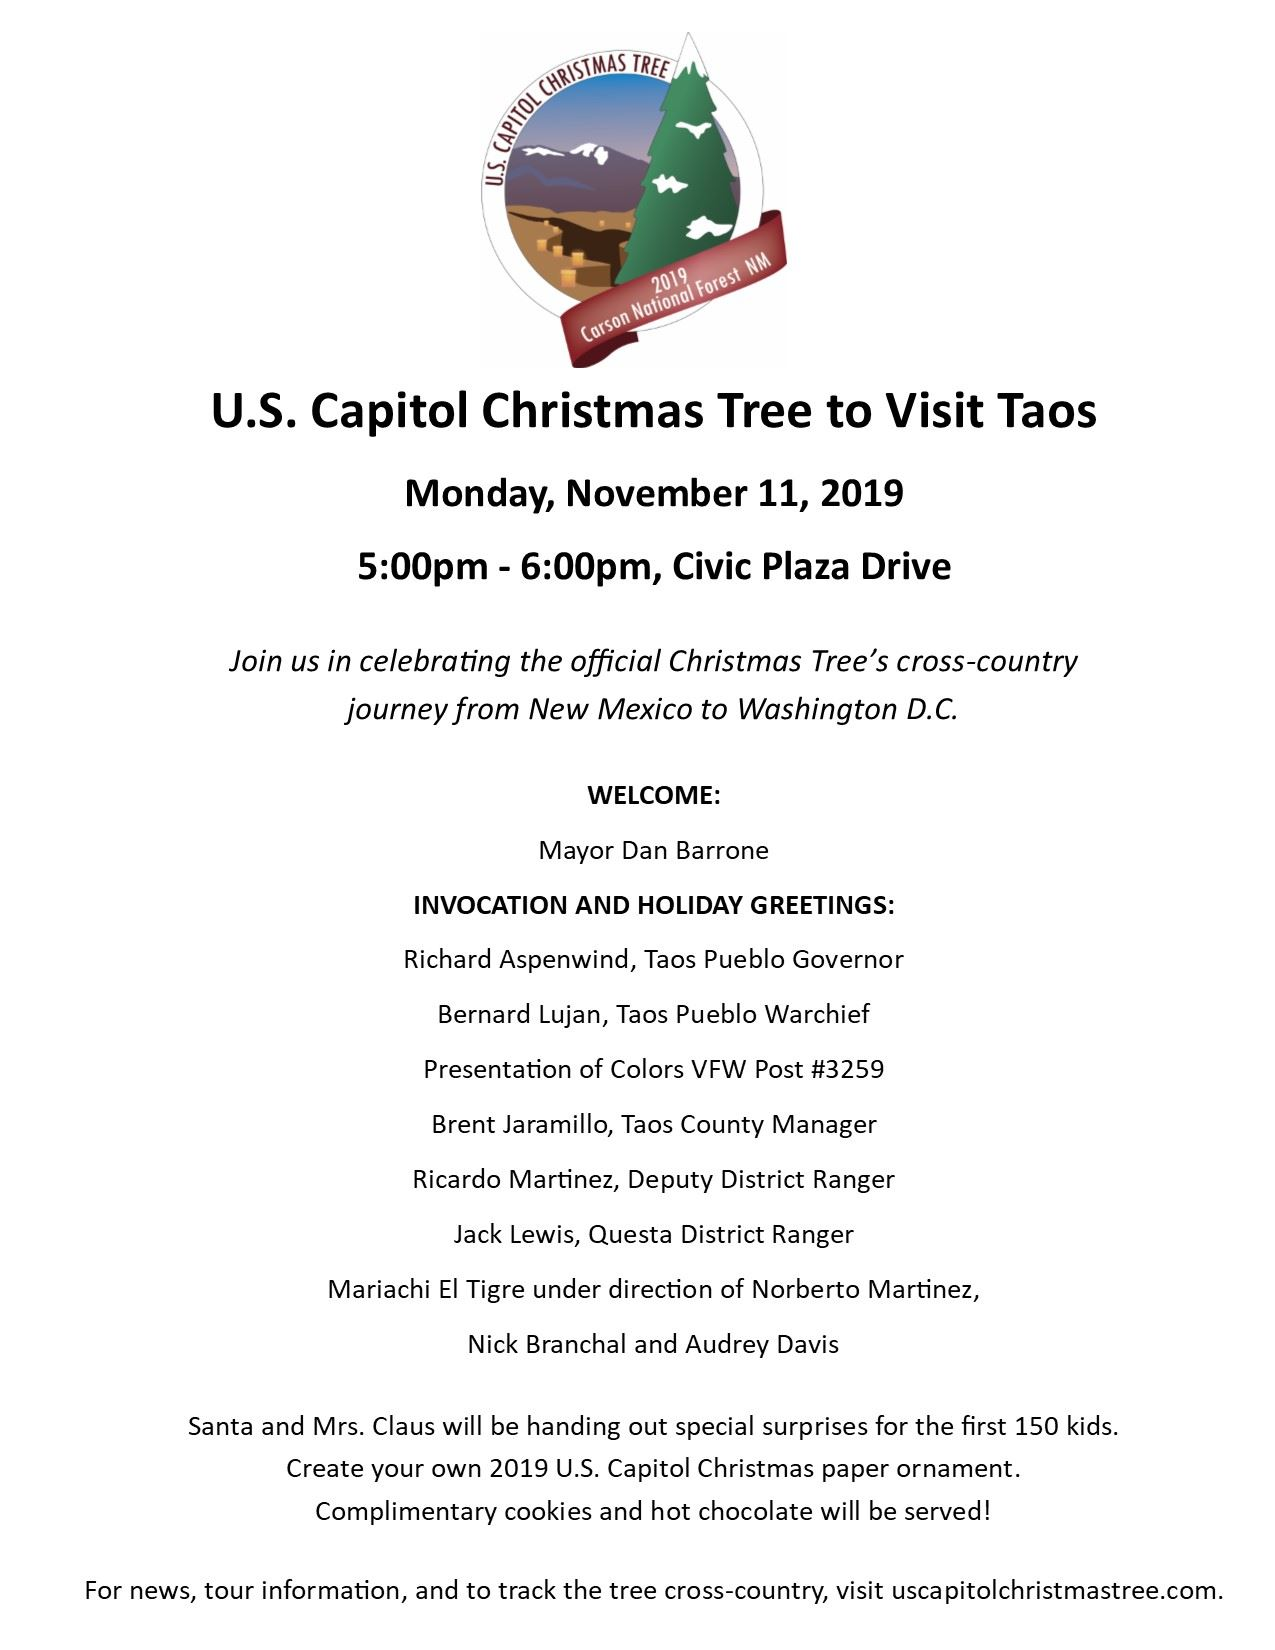 U.S. Capitol Christmas Tree to Visit Taos flyer (002)